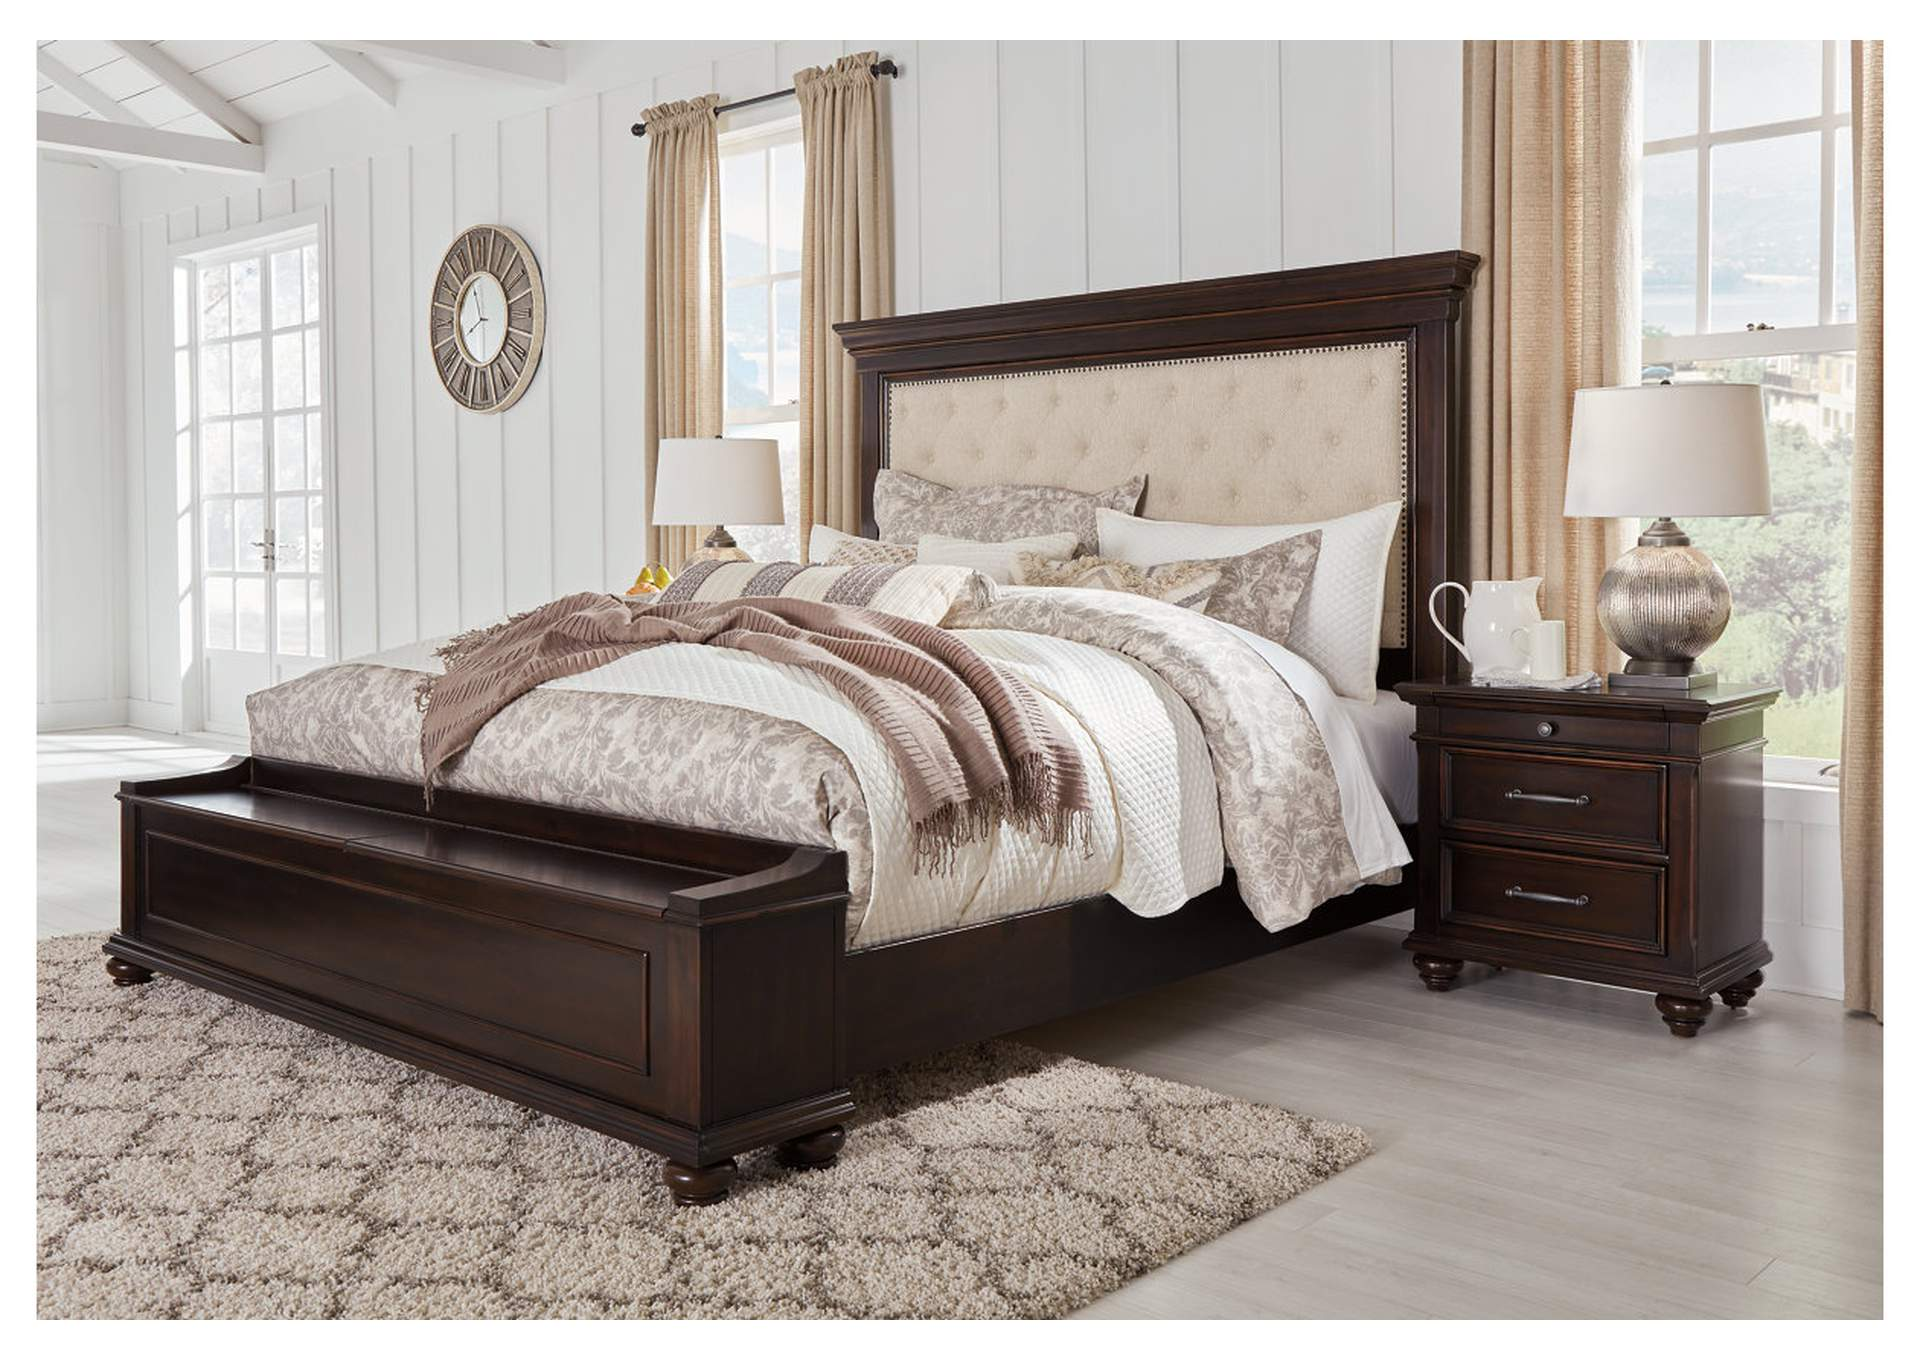 Brynhurst Brown California King Upholstered Storage Bed,Signature Design By Ashley